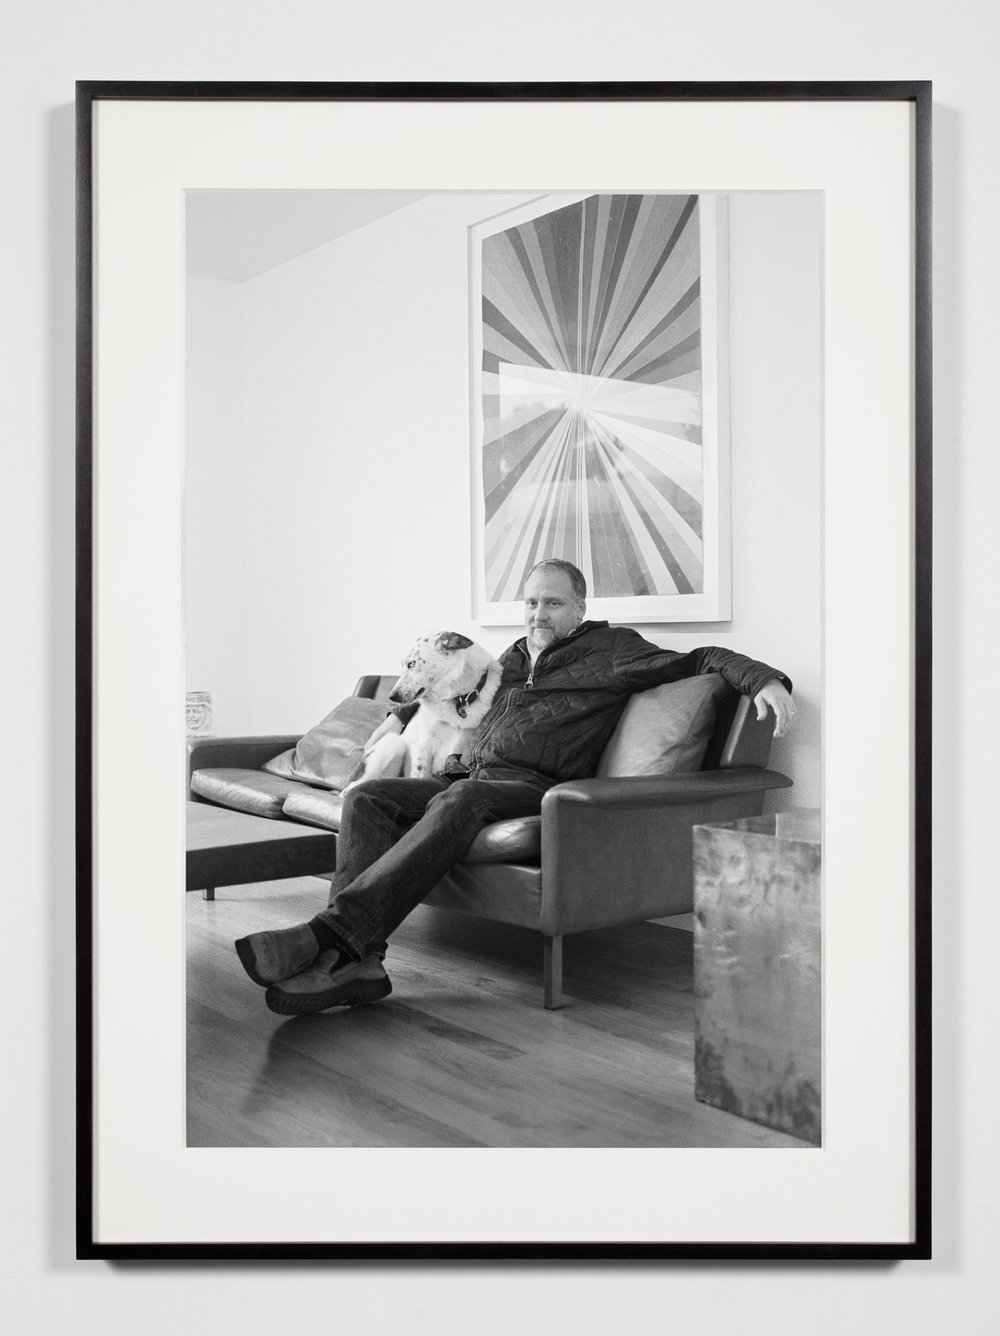 Gallery Owner with Dog, Los Angeles, California, February 5, 2010   2011  Epson Ultrachrome K3 archival ink jet print on Hahnemühle Photo Rag paper  36 3/8 x 26 3/8 inches   Industrial Portraits, 2008–    A Diagram of Forces, 2011